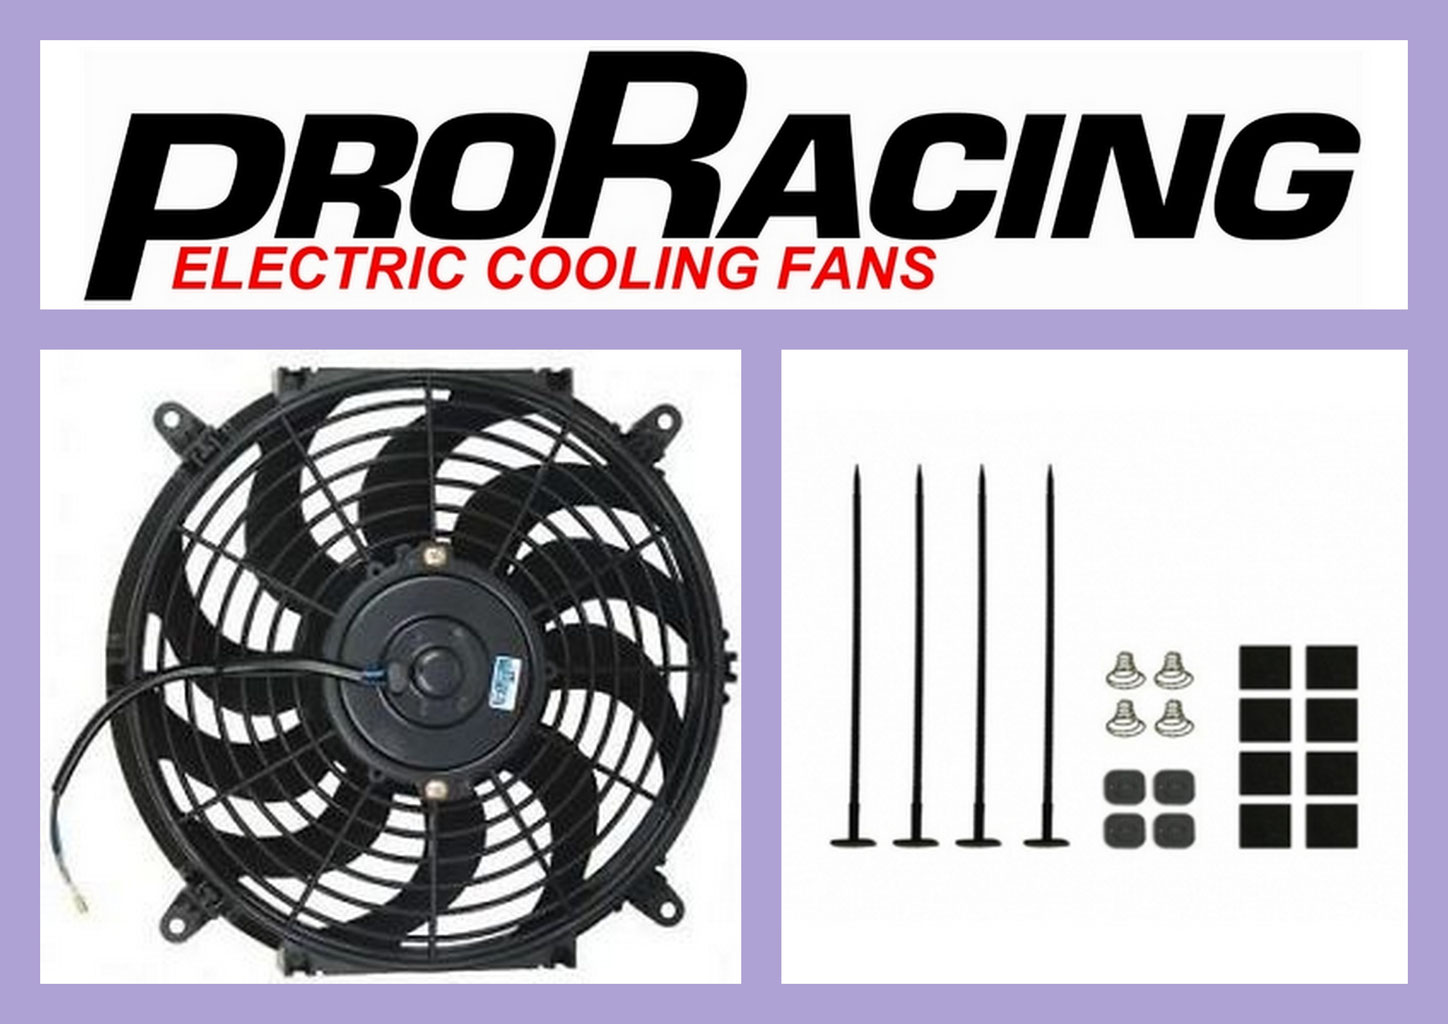 electric radiator fan mounting kit instructions